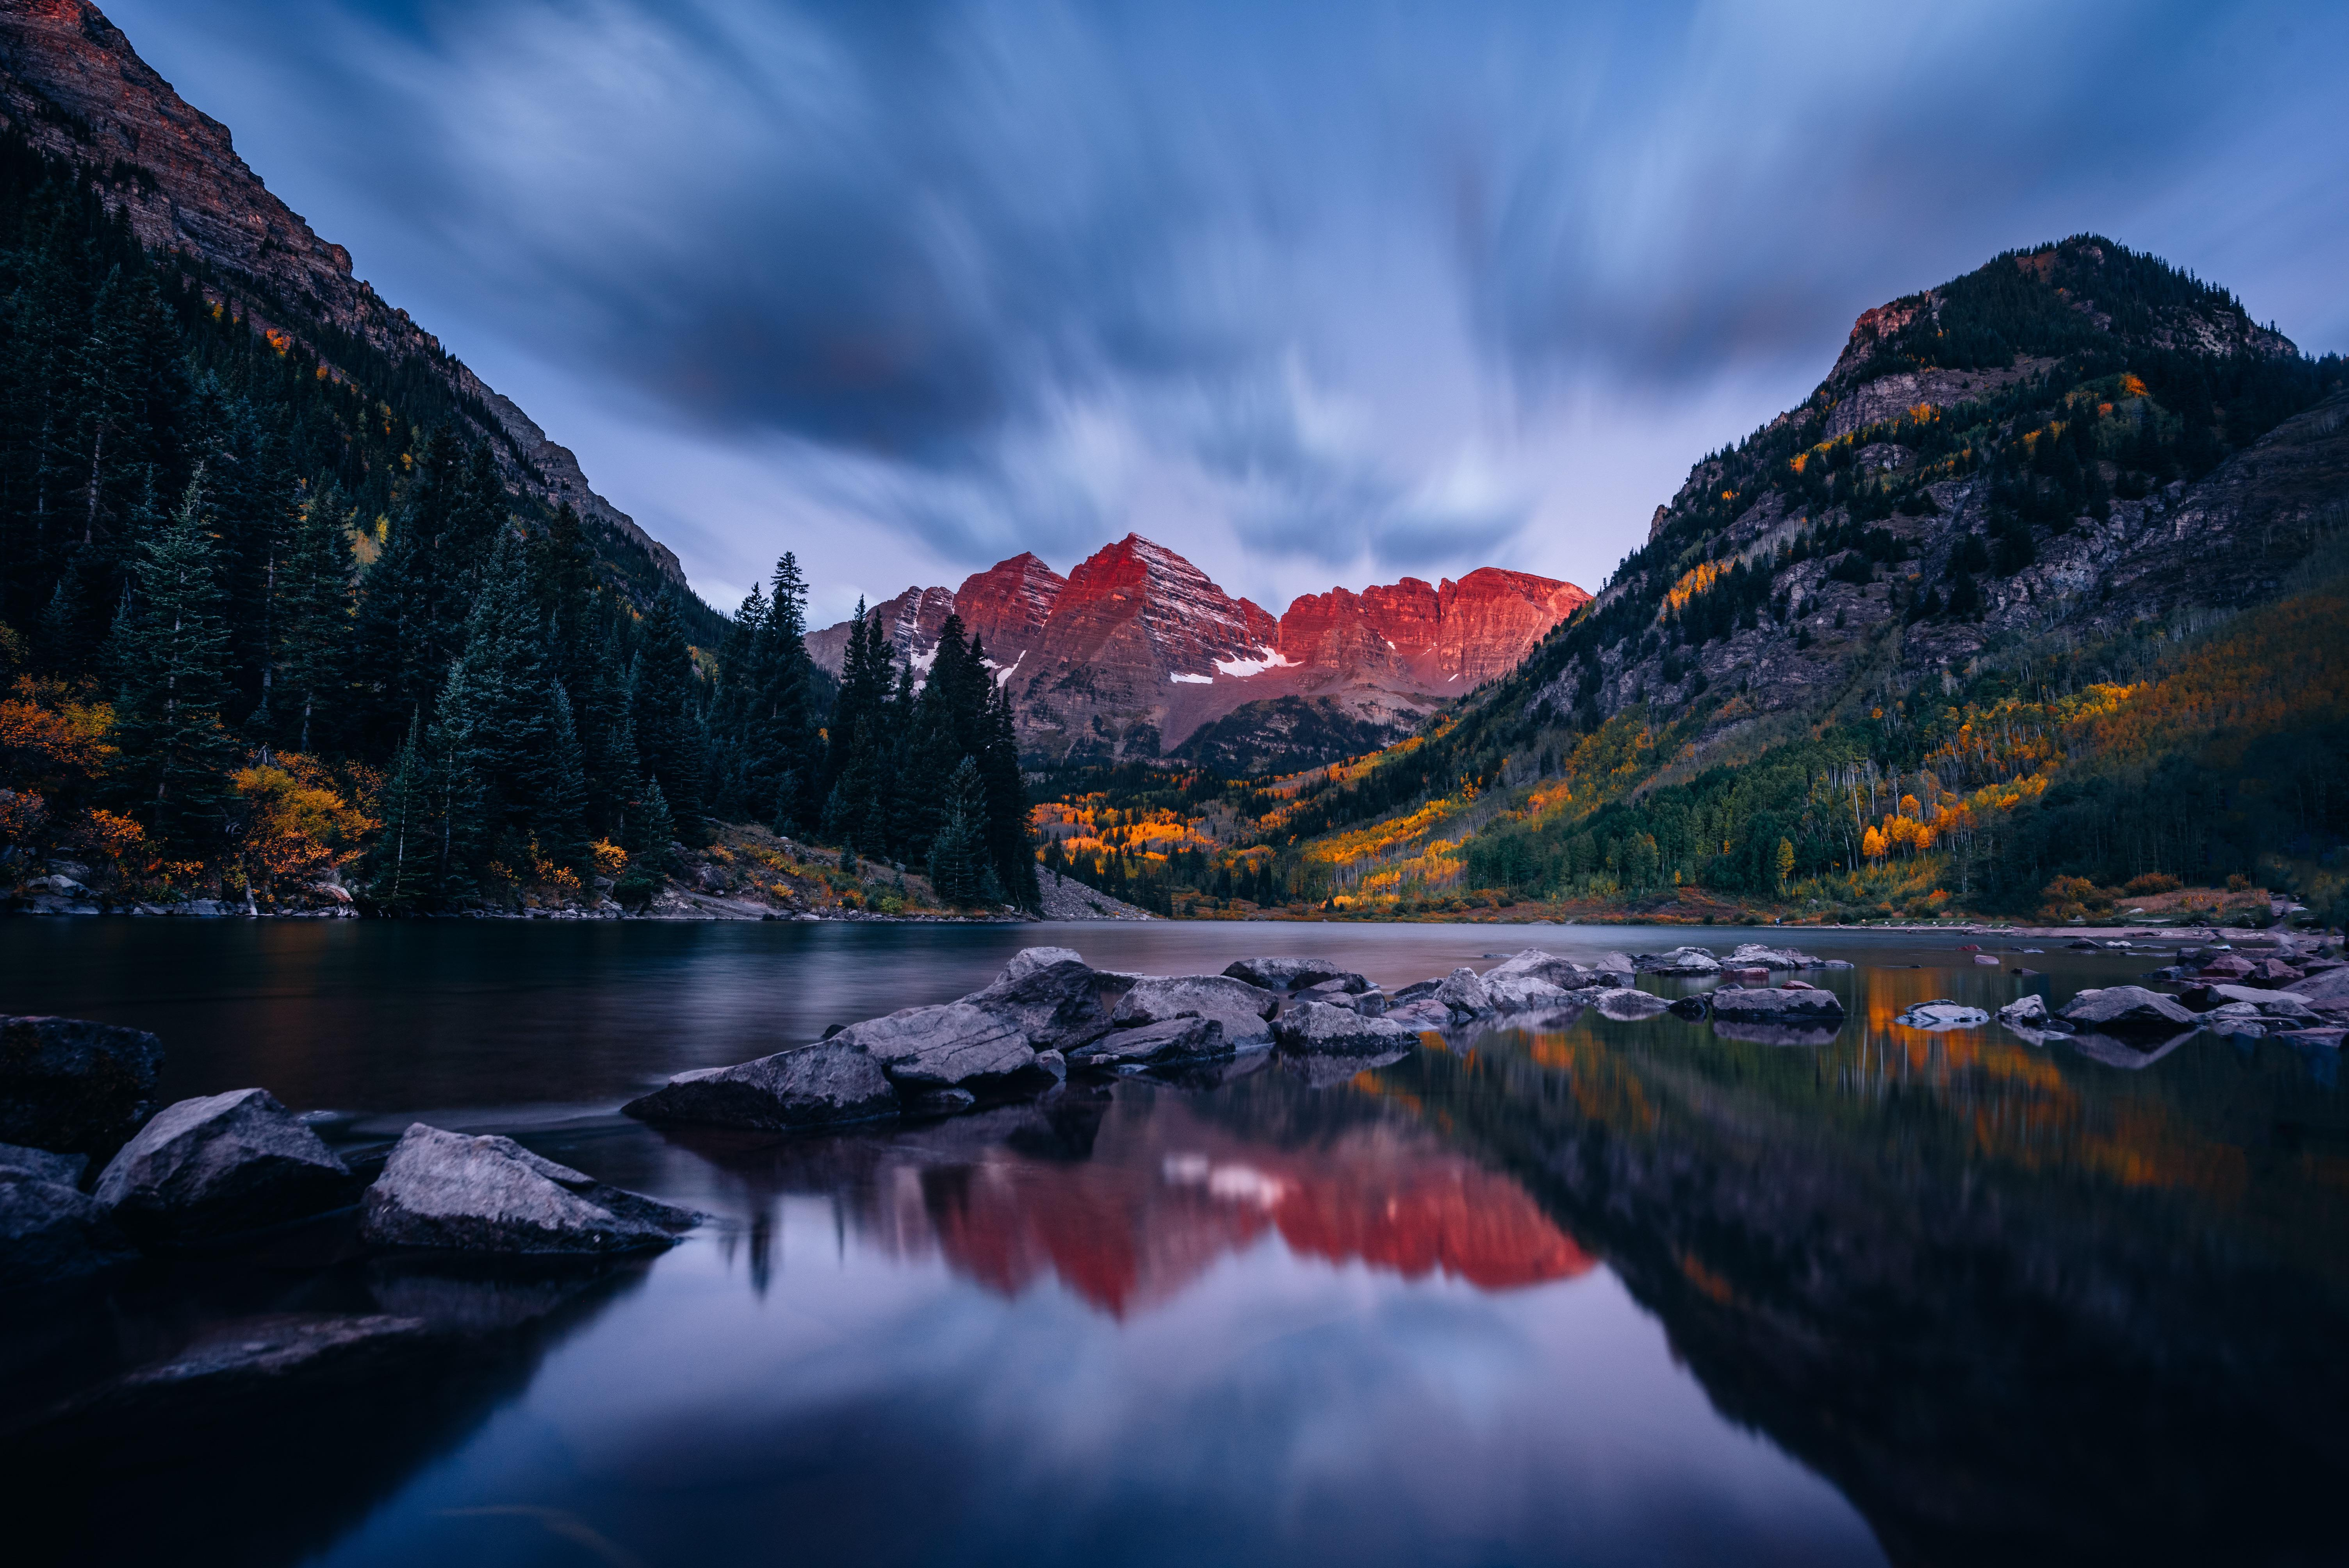 General 6016x4016 landscape mountains lake sky sunset nature pine trees reflection long exposure maroon bells